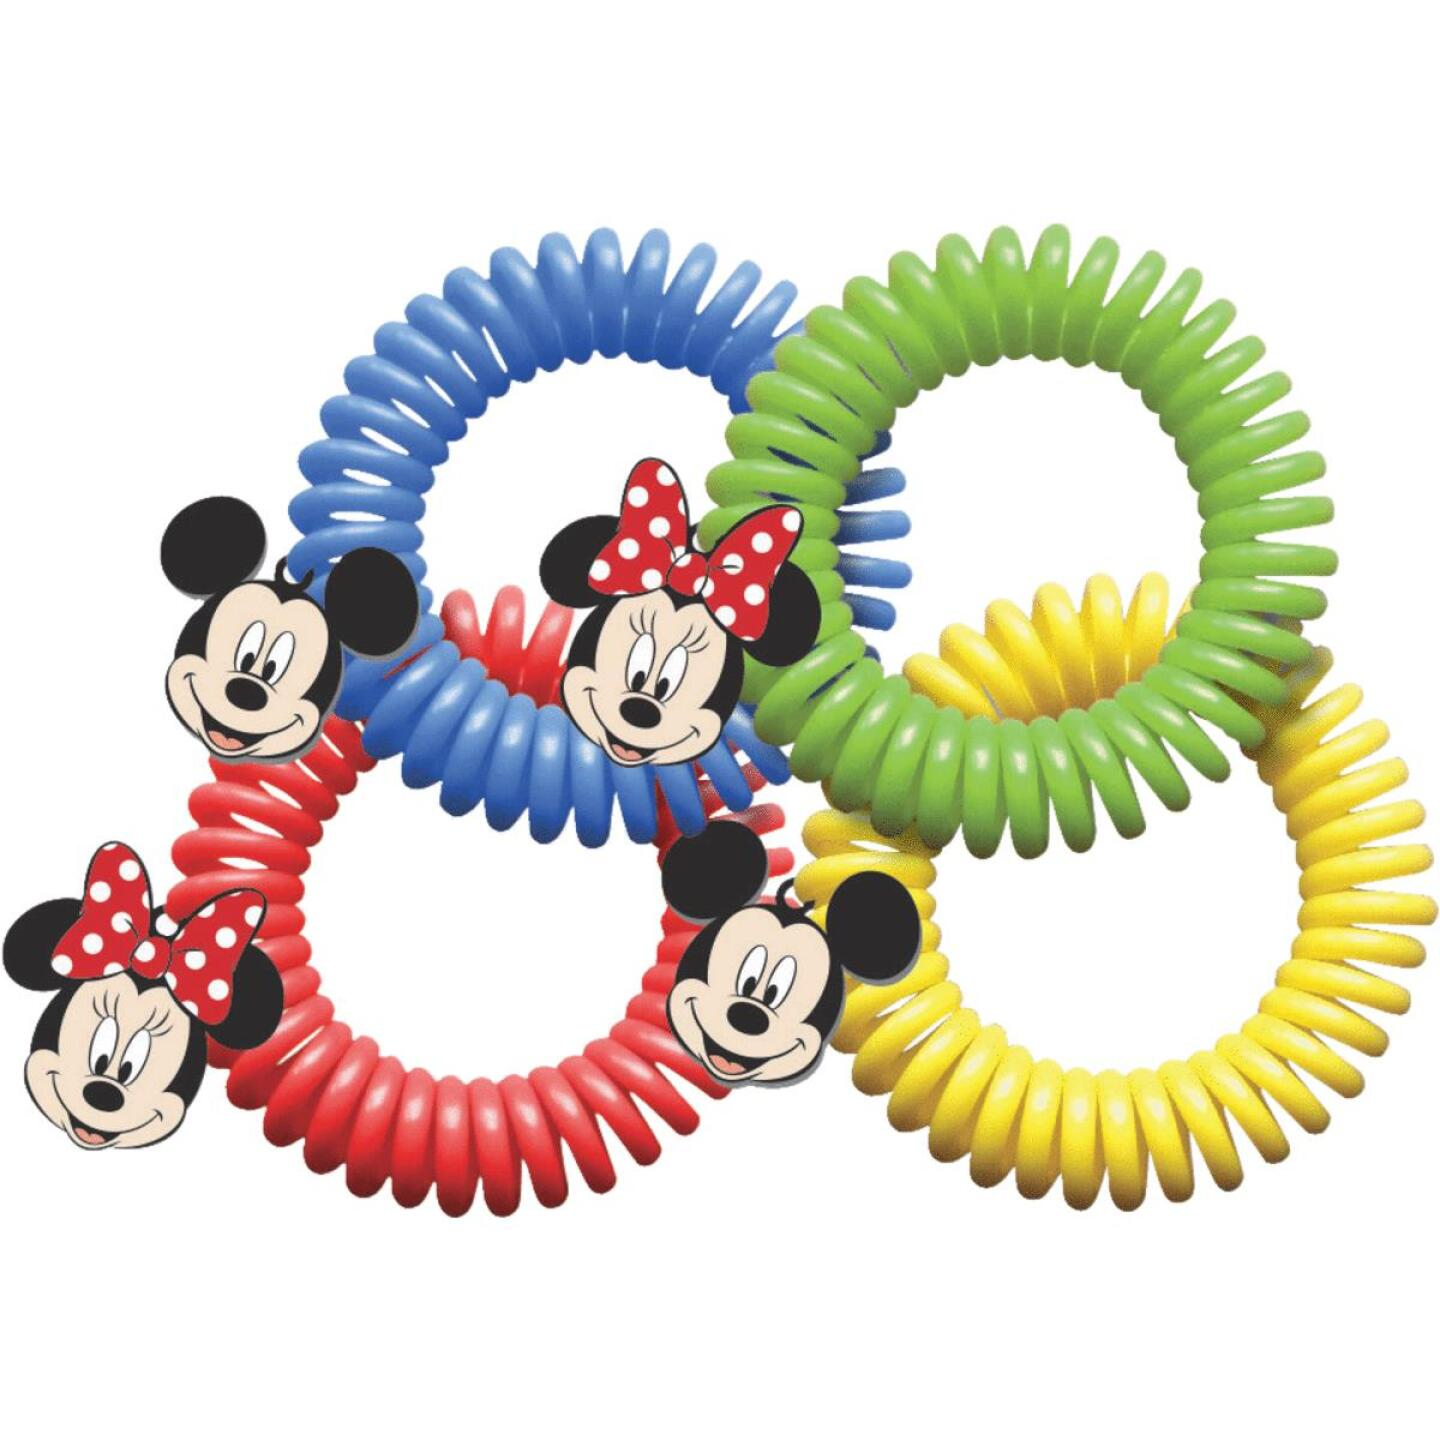 Evergreen Products Disney Assorted Color Insect Repelling Wristband Image 1